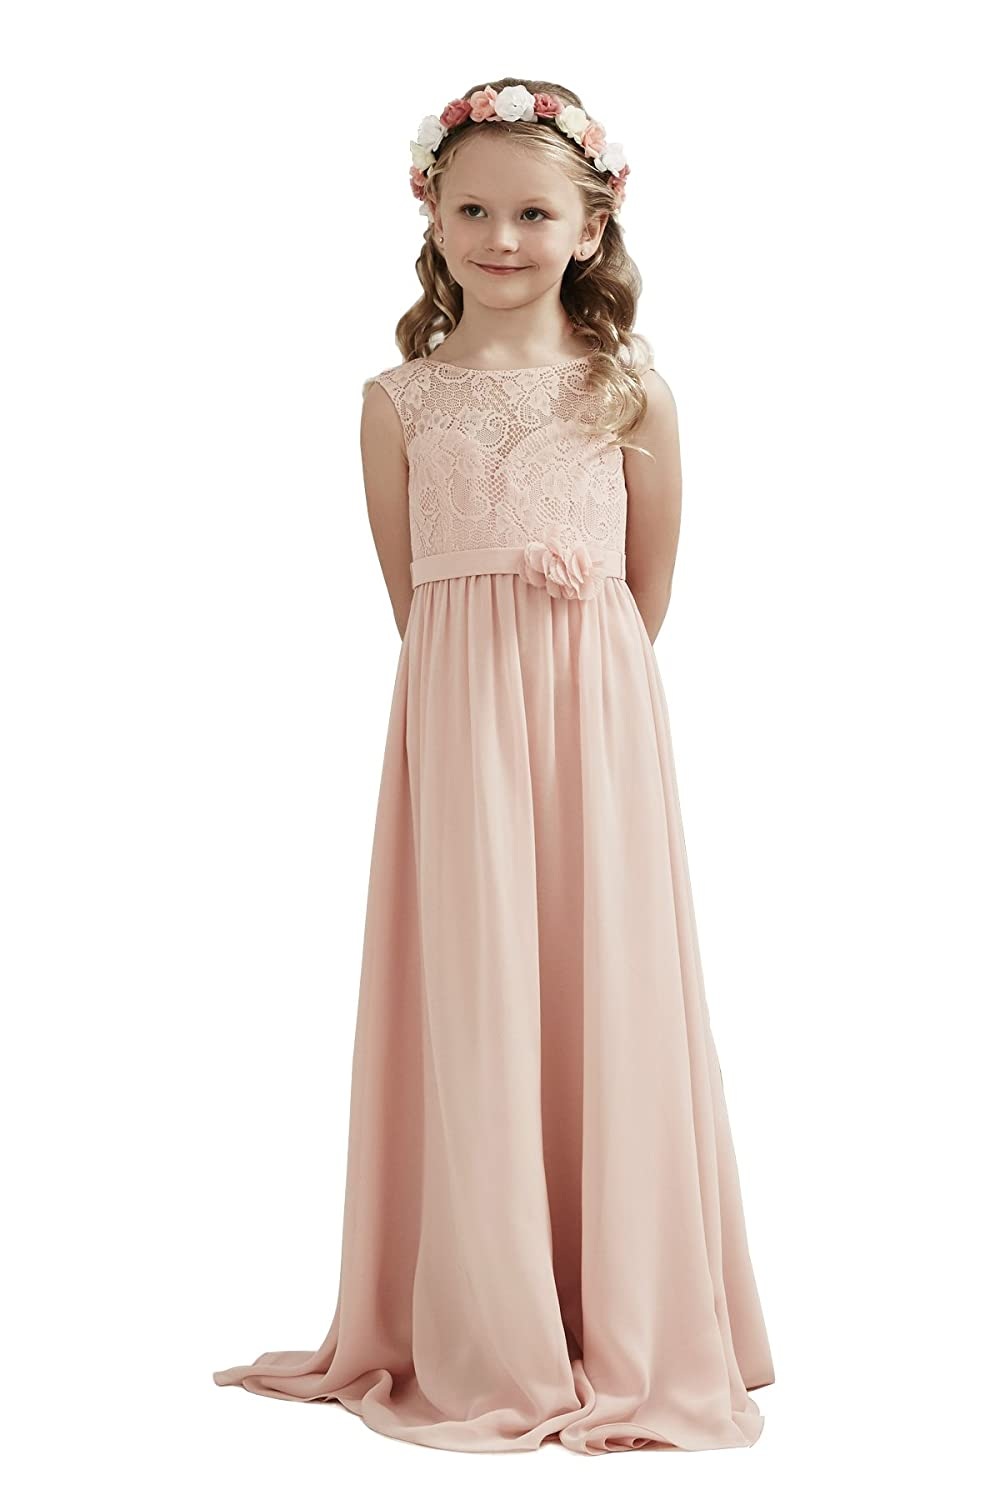 0b05f379729 Top1  Alivedre Lace Chiffon Junior Bridesmaid Dress Wedding Party Girl  Dresses. Wholesale Price 38.99 -  46.00. Fabric lace chiffon. Available in  US size ...